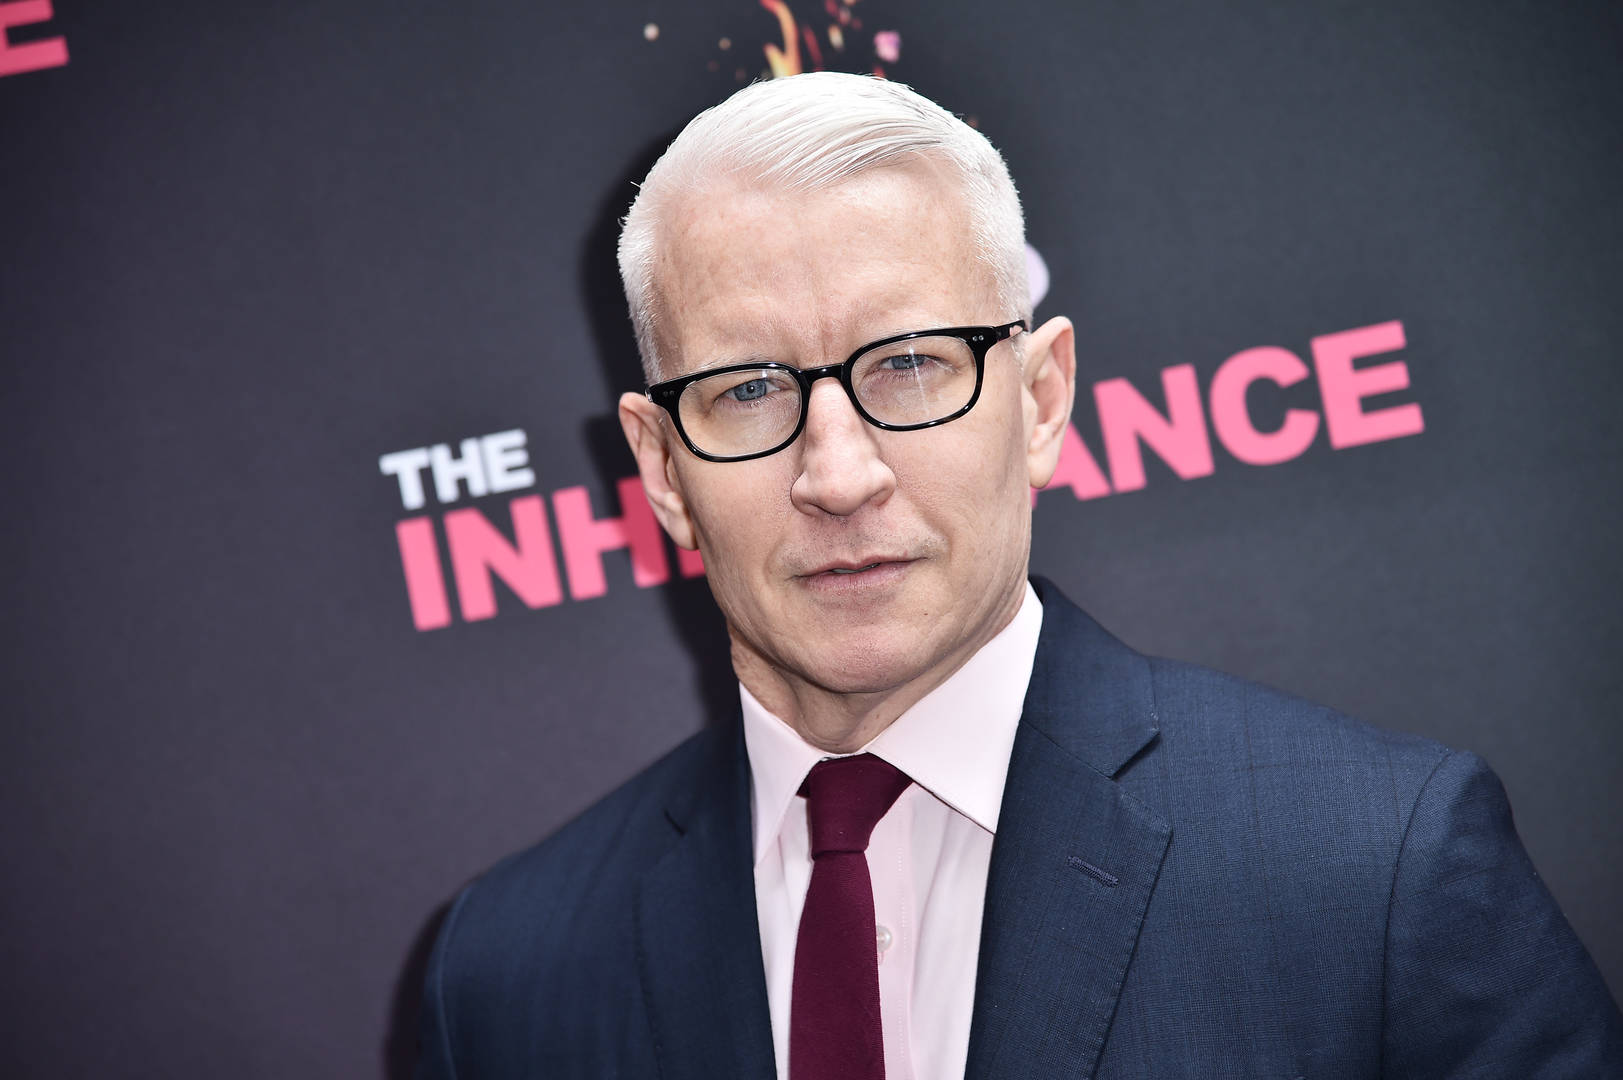 Anderson Cooper Regrets Calling Trump an 'Obese Turtle' - Find Out Why